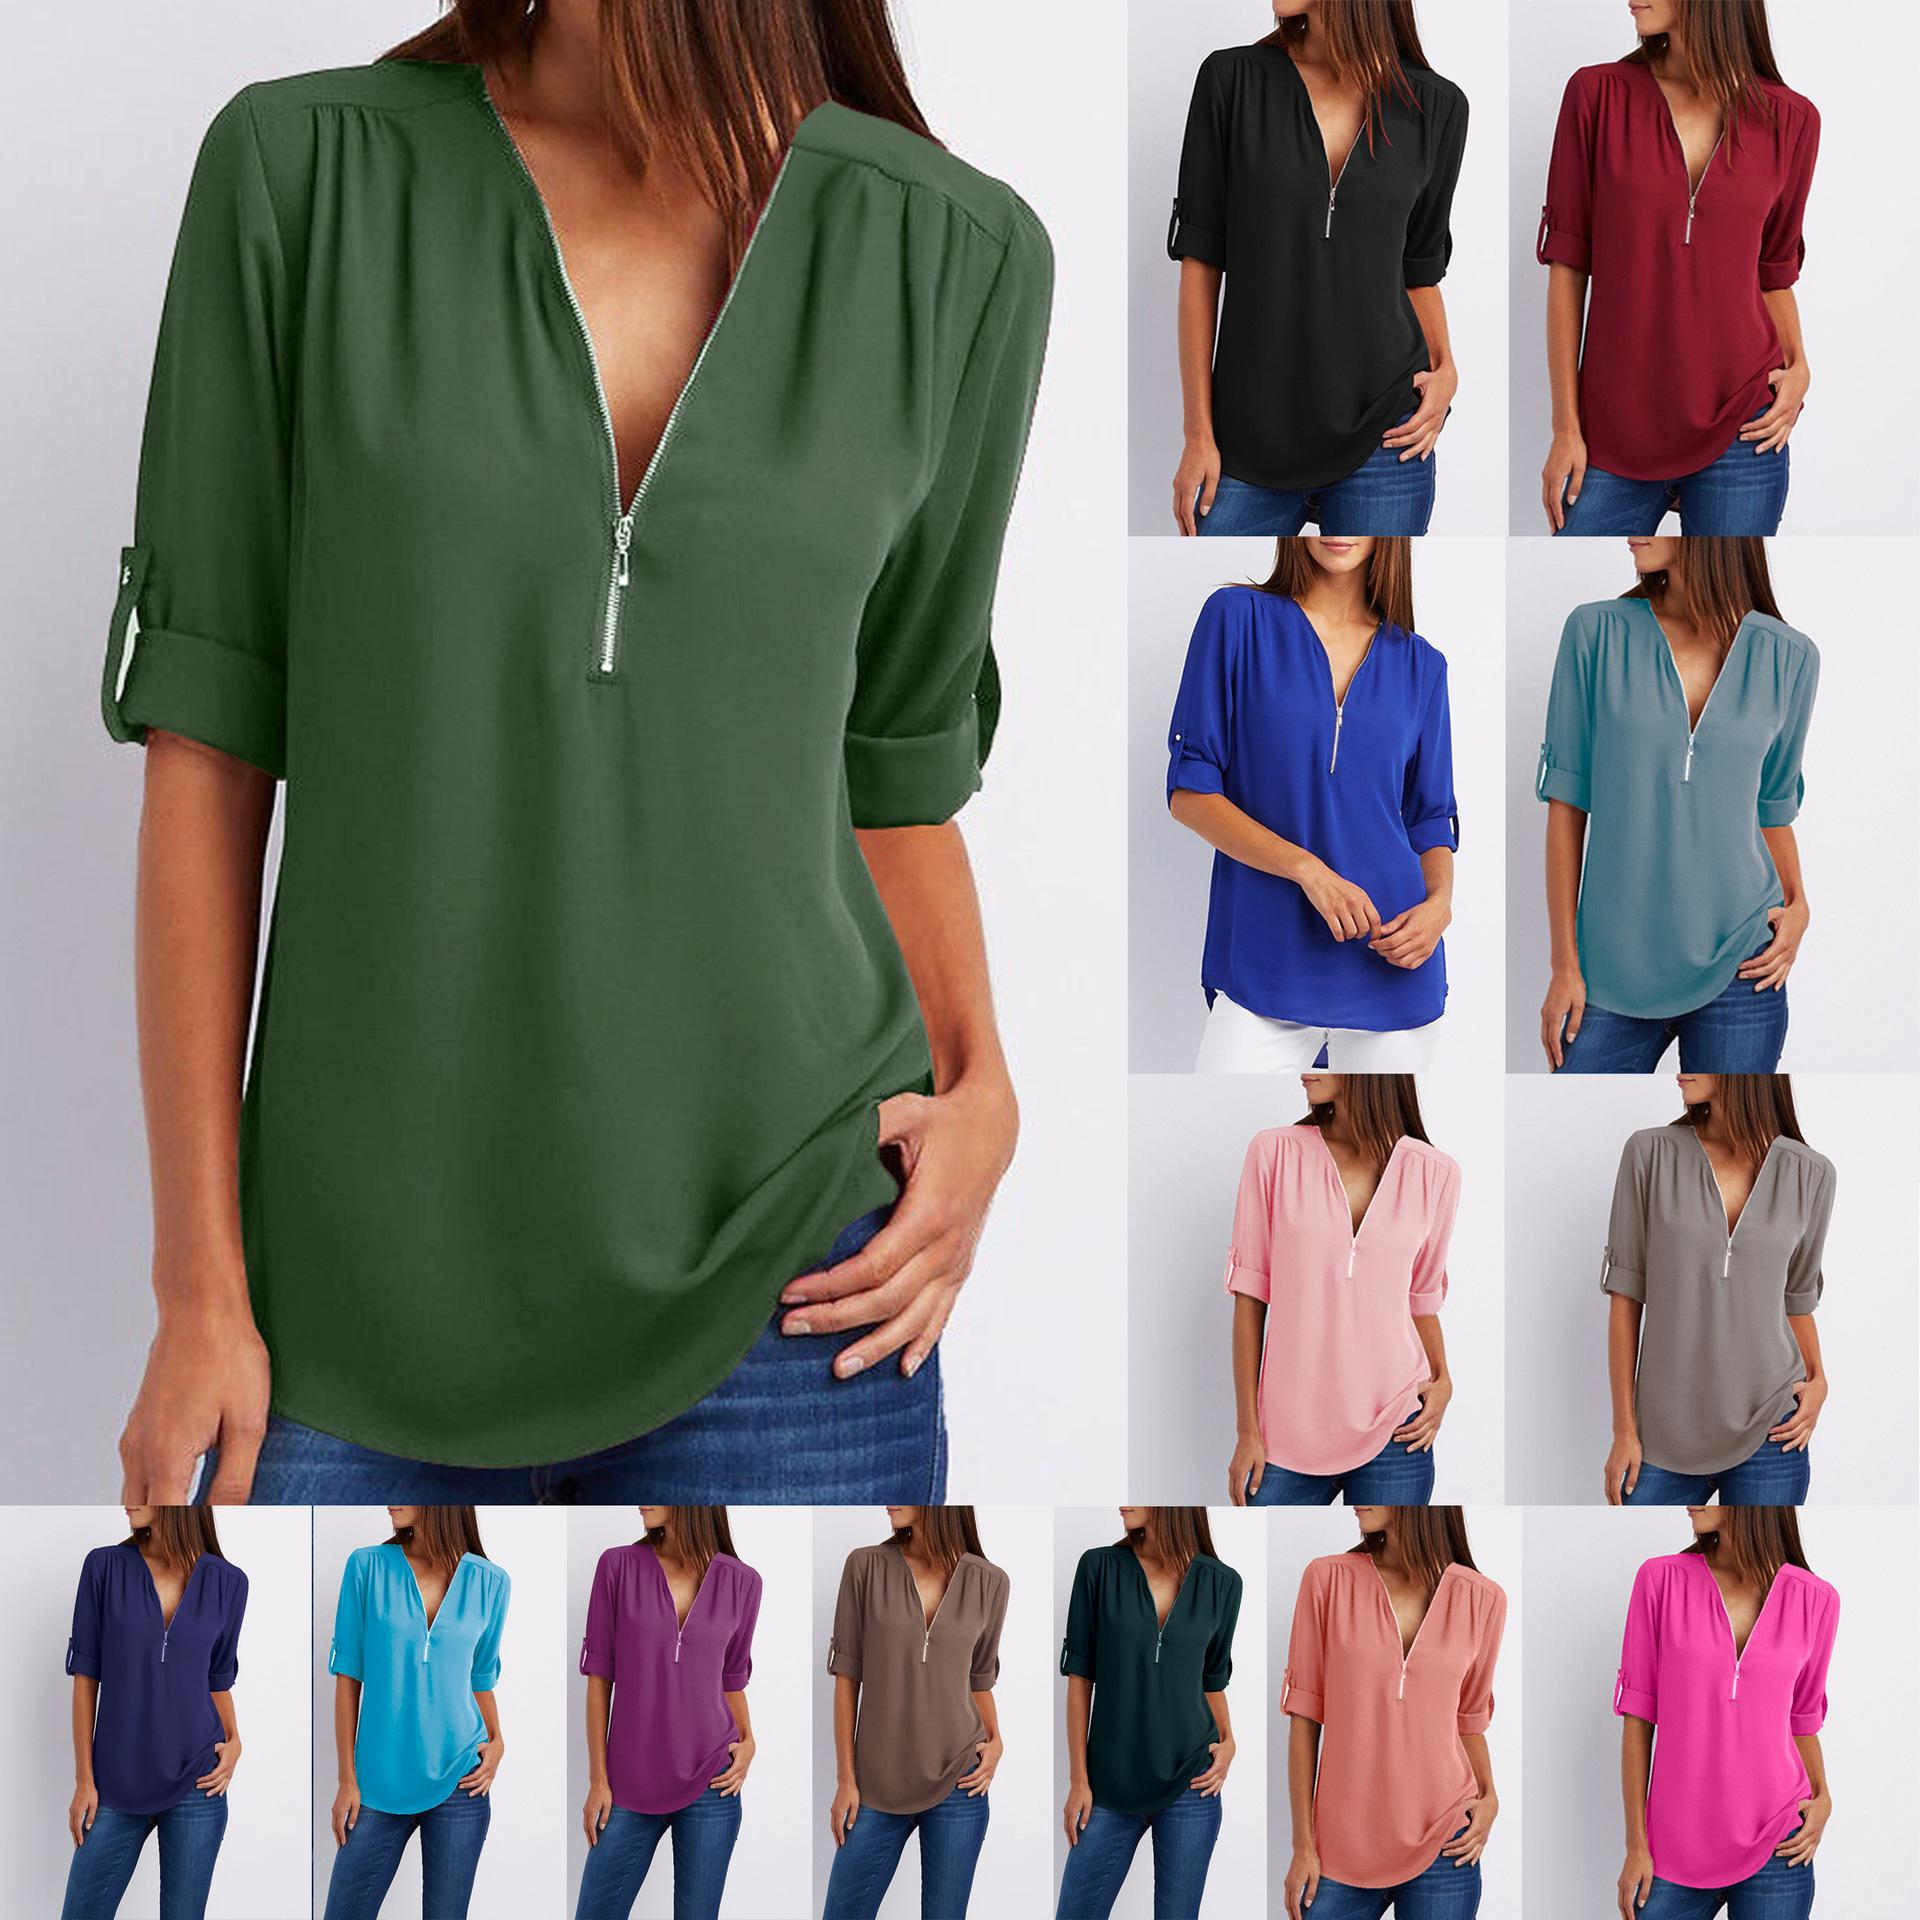 ecd6b3d5ddd Women S Summer V Neck Solid Loose Casual Tees Cuffed Long Sleeve Blouses  Ladies Low Cut Sexy Chiffon Material Top Shirts UK 2019 From Mindai